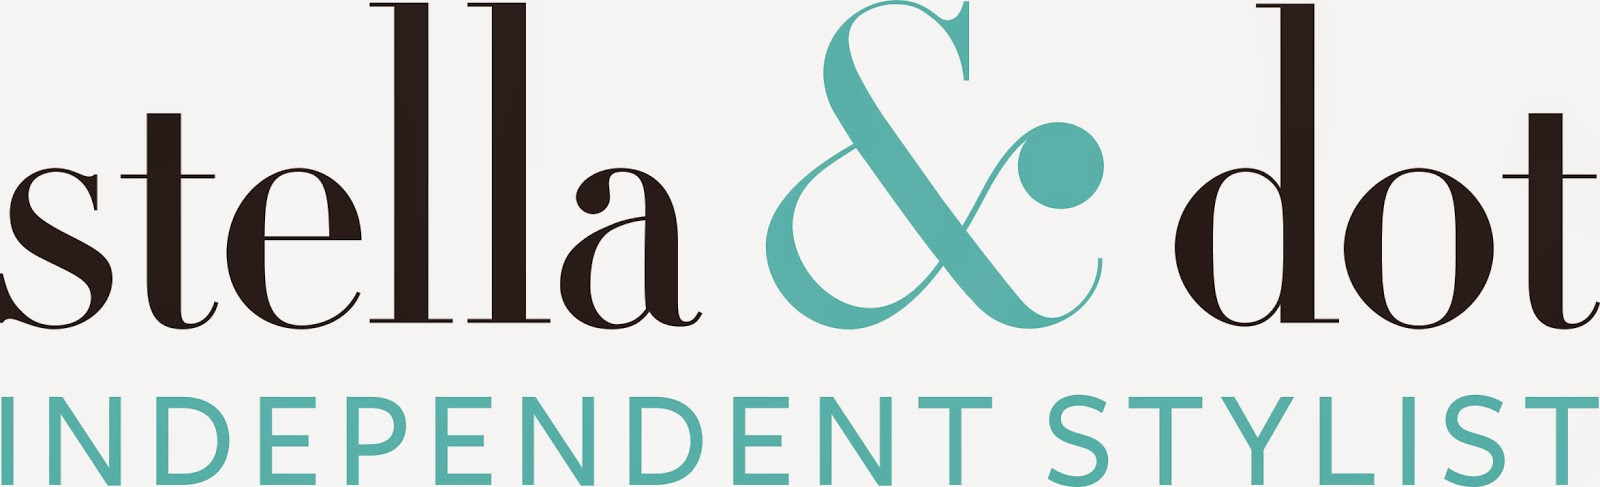 Stella & Dot Sale: Up to 60% Off Starts Today Ends 2/21